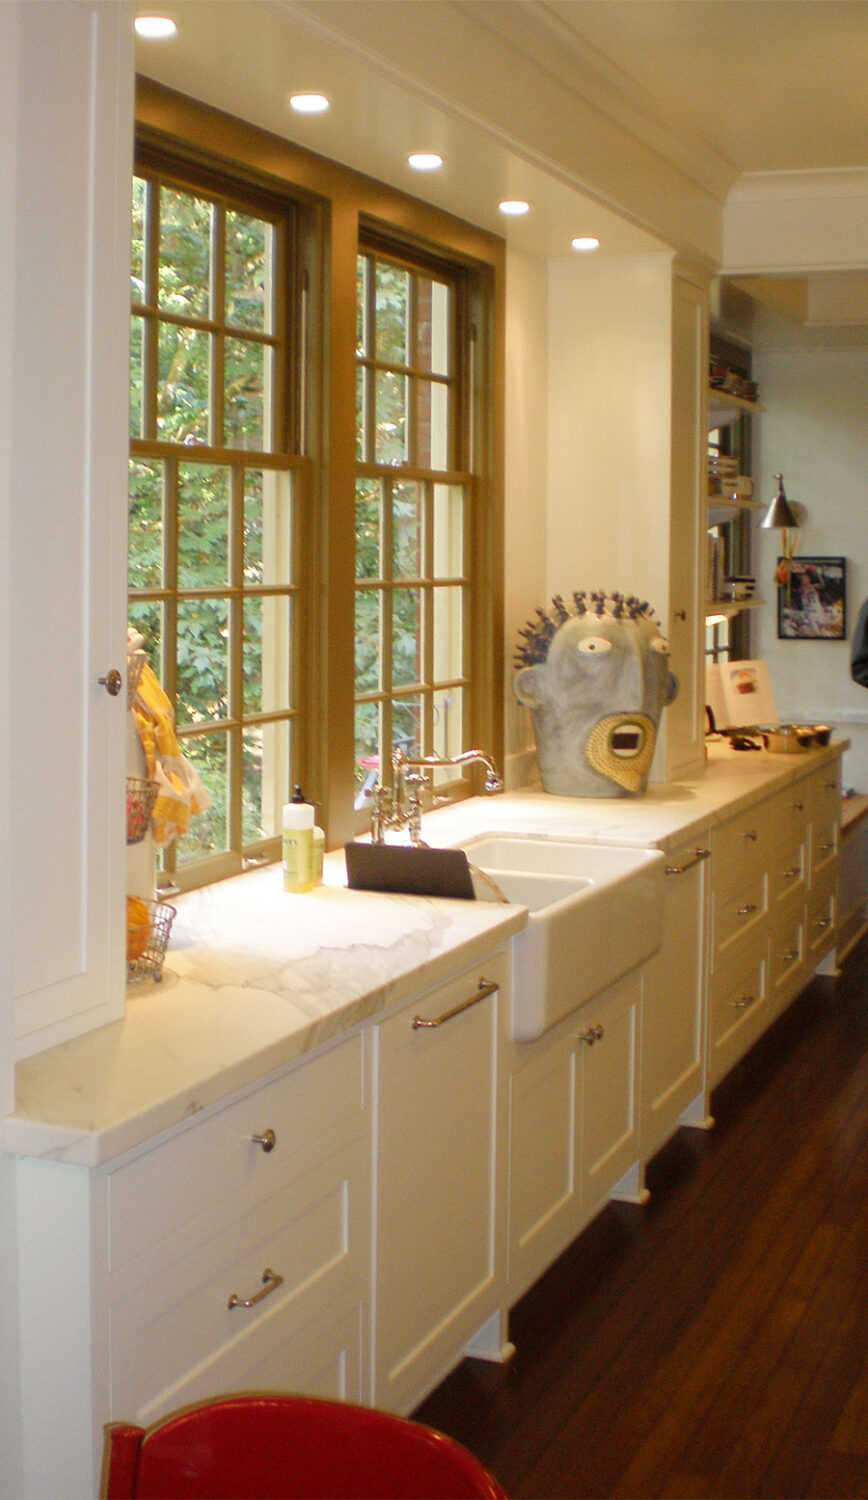 kaufman-homes-remodel-lincoln-2